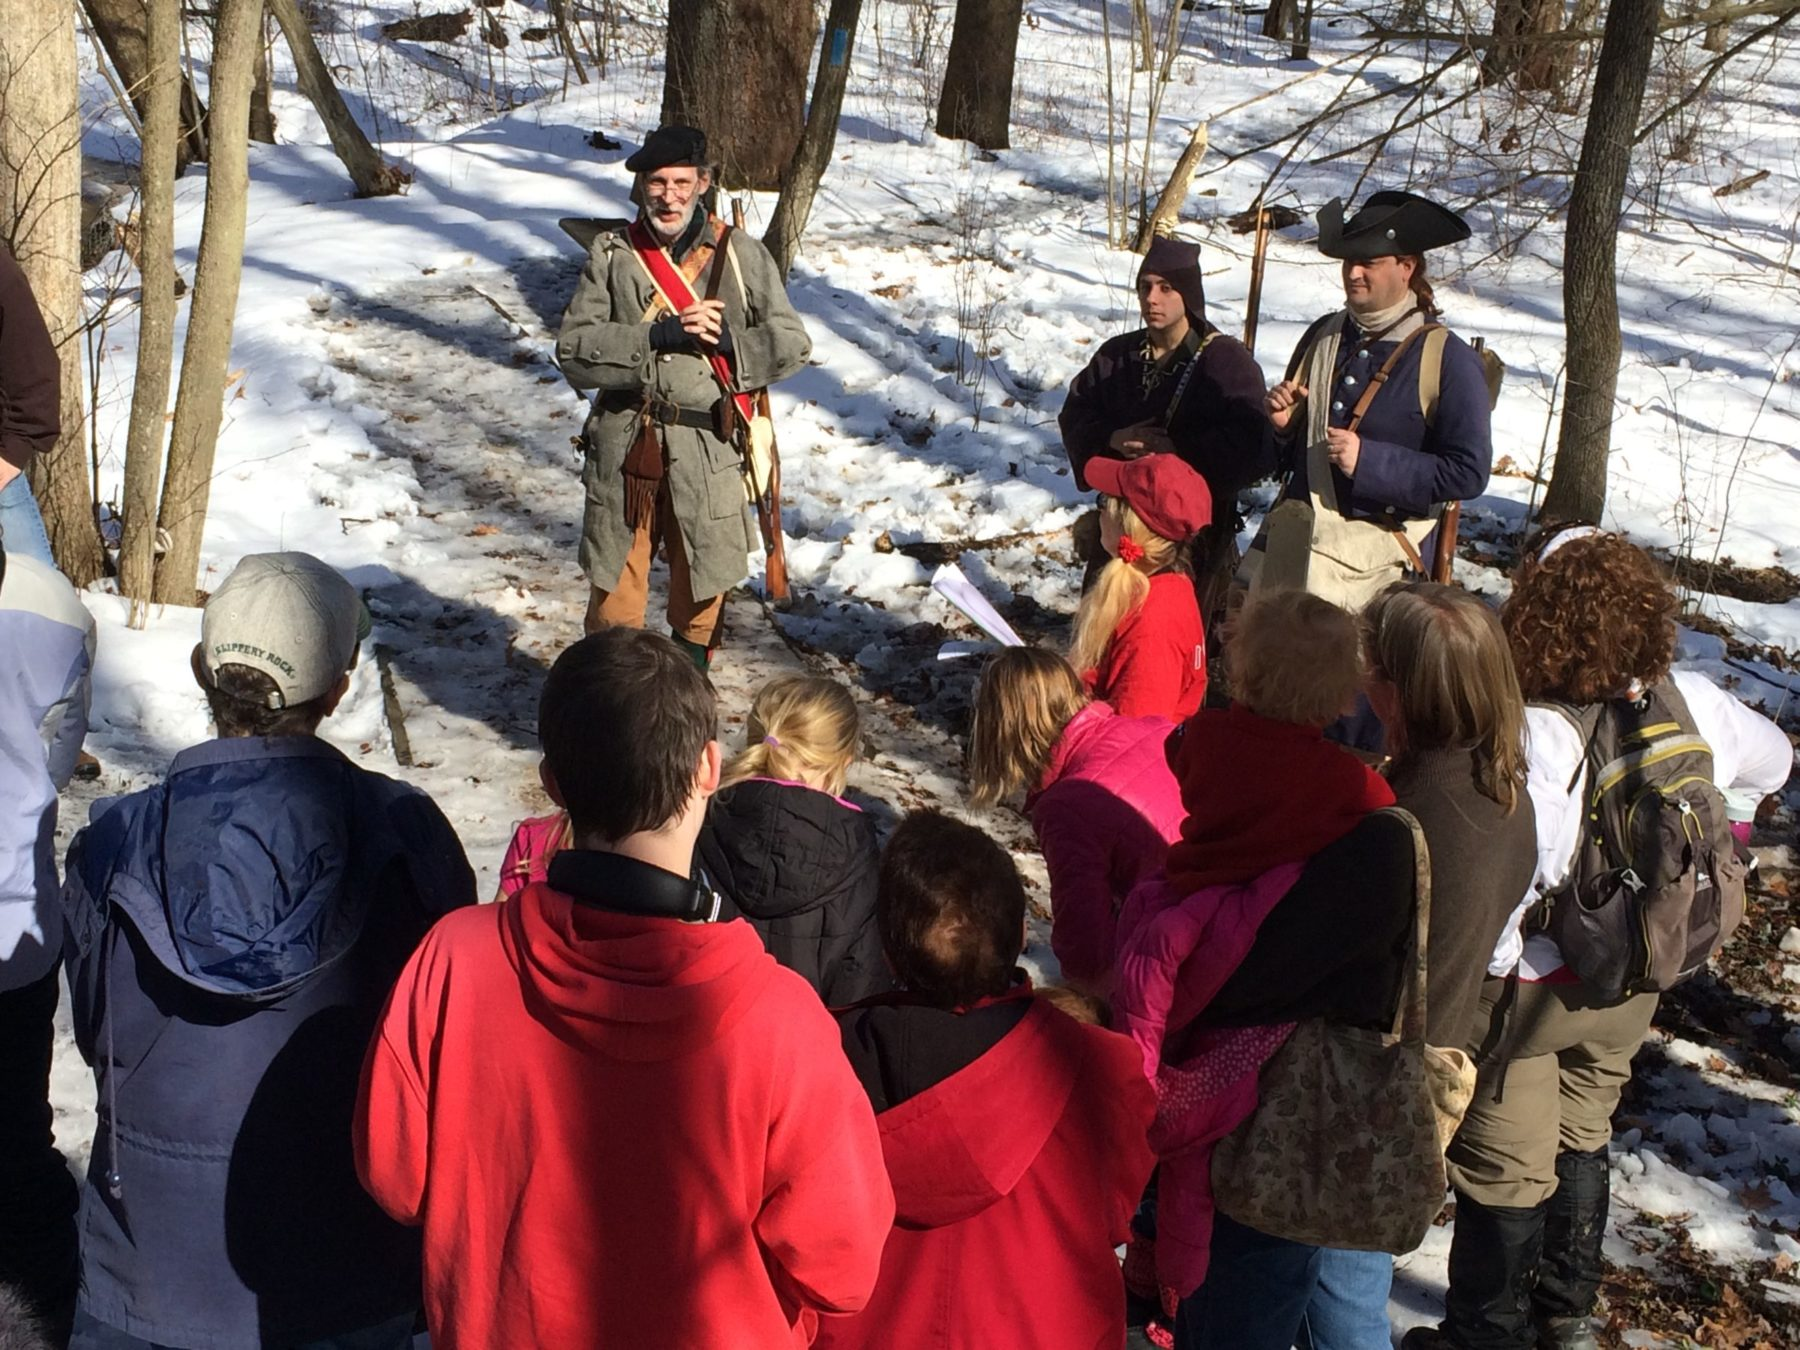 Bob Shaner of Leechburg, Pa., portraying frontier guide Christopher Gist, talks to hikers about the musket shot that almost killed 21-year-old George Washington when he traveled through western Pennsylvania in 1753. Similar reenactments will happen during history hikes scheduled for Feb. 22 at Jennings Environmental Education Center near Slippery Rock.